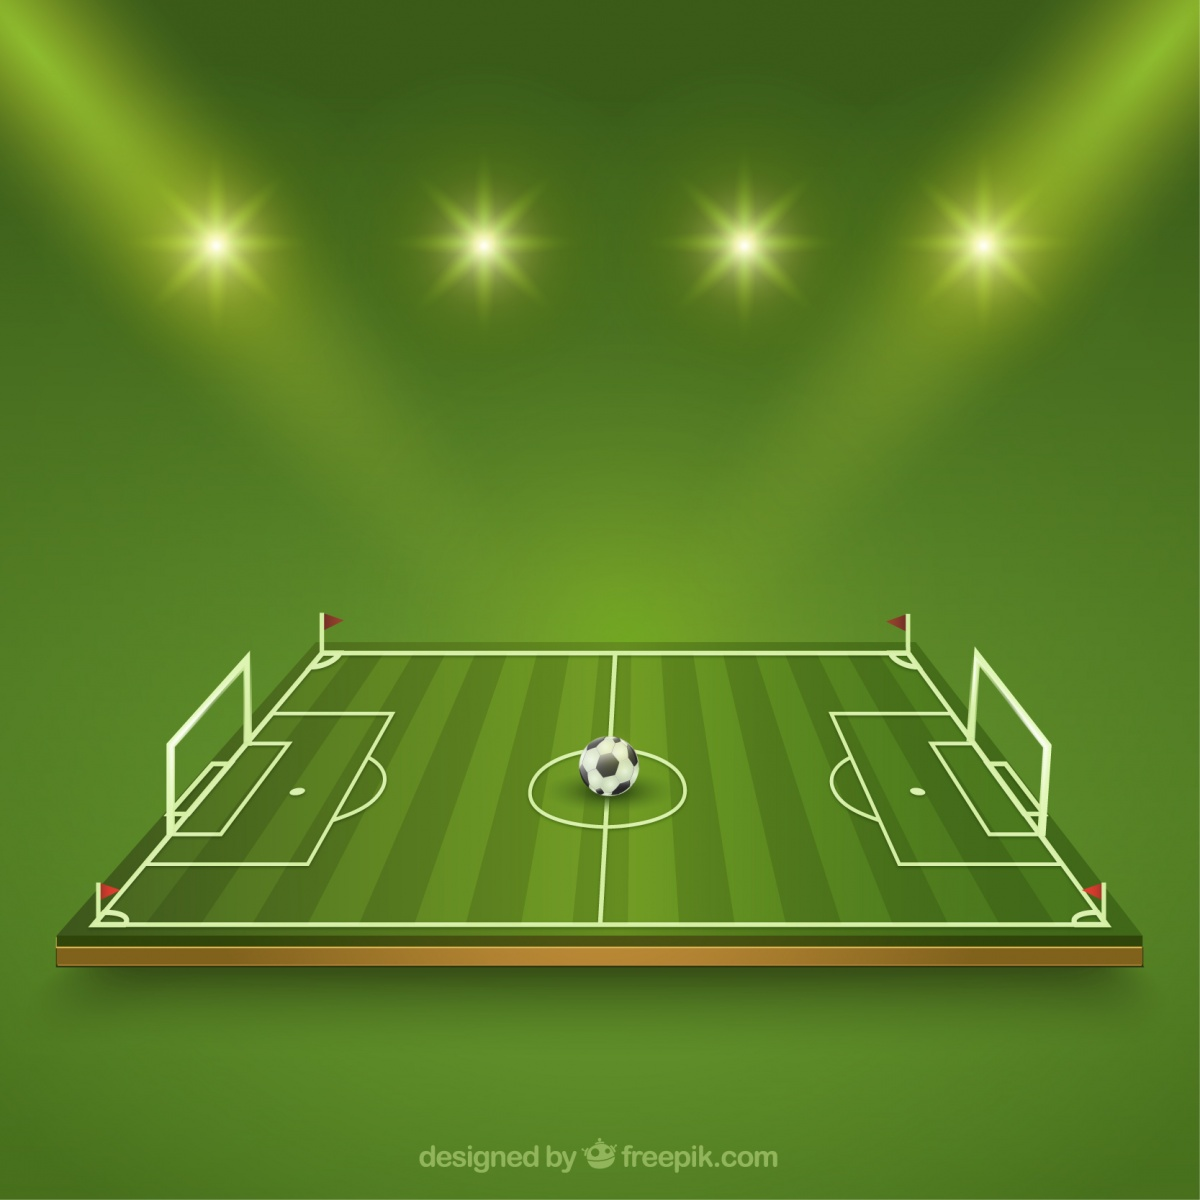 To read the match reports please scroll down and open the pdf file/s!   <a href='http://www.freepik.com/free-vector/football-field_787098.htm'>Designed by Freepik</a>  <a href='http://www.freepik.com/free-vector/football-field_787098.htm'>Designed by Freepik</a>